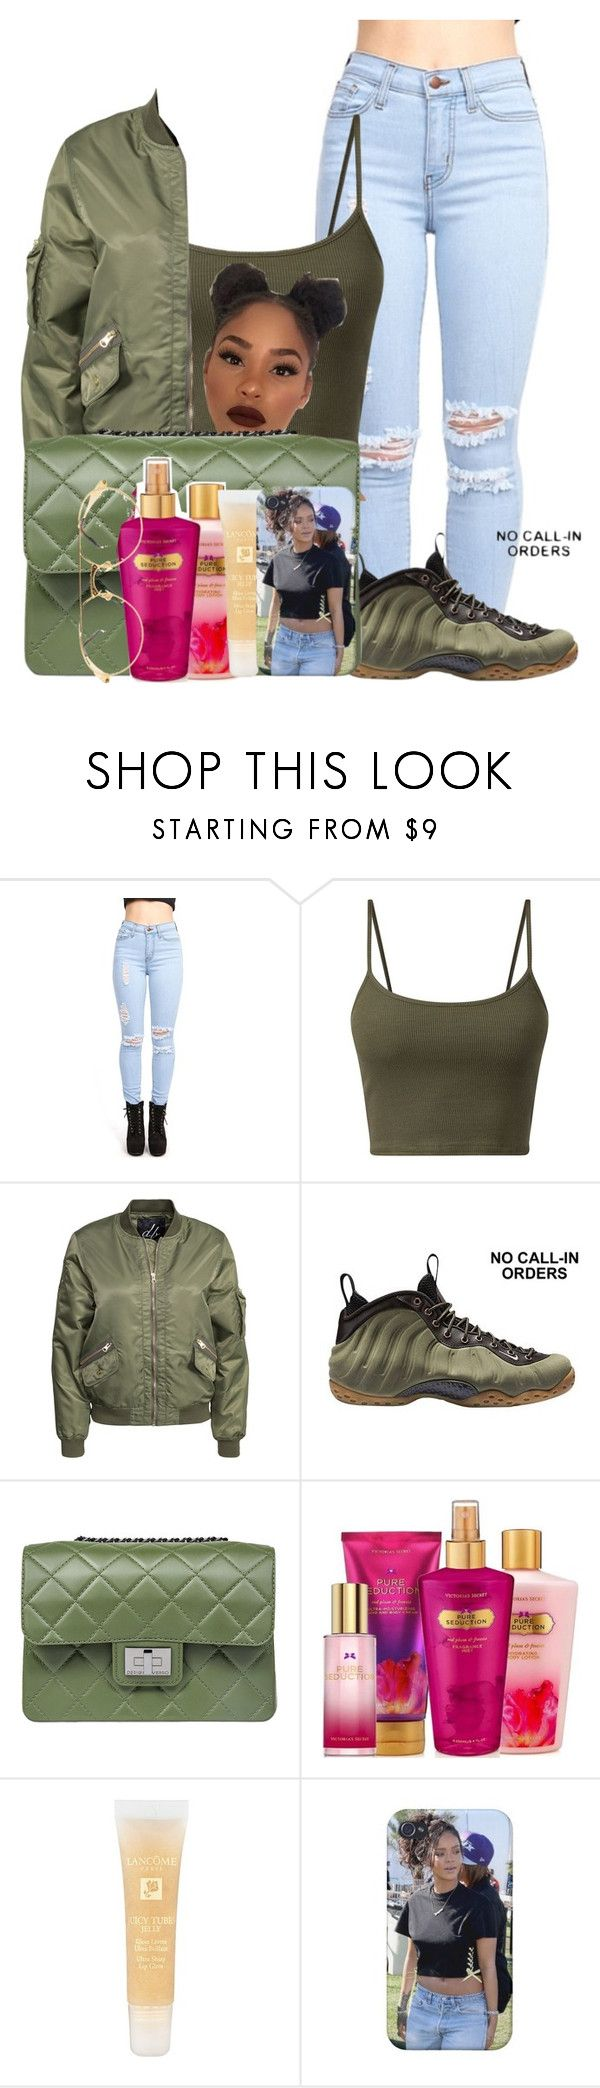 """"""""""" by bvsedg0d ❤ liked on Polyvore featuring D. Brand, NIKE, Design Inverso, Victoria's Secret, Lancôme and MCM"""